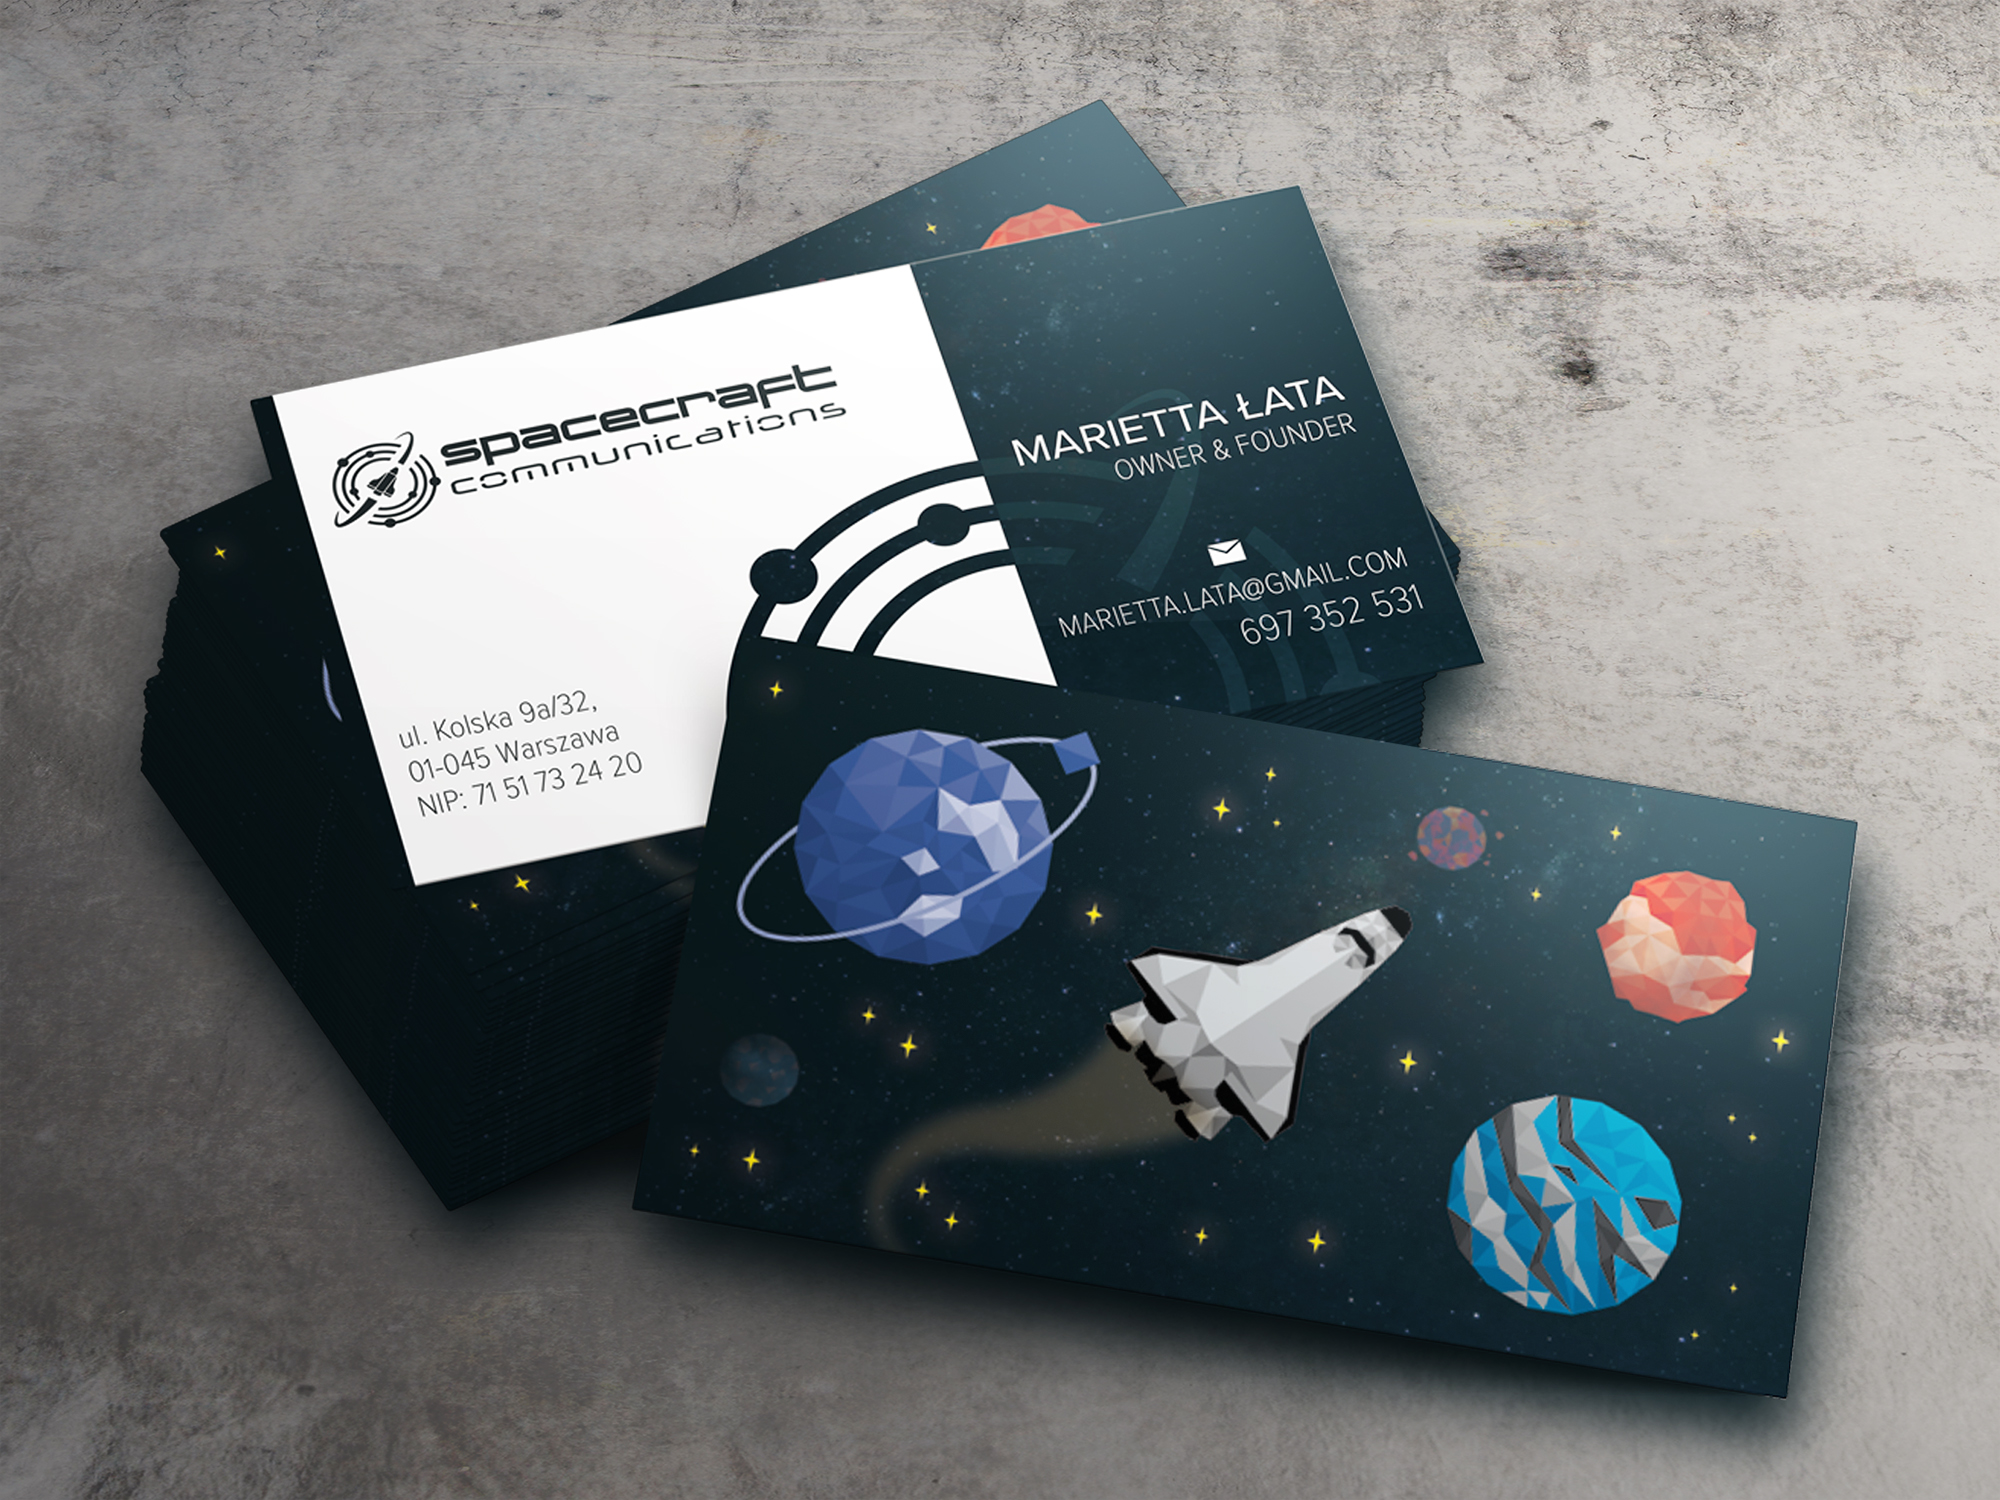 Spacecraft communications business cards - Spacecraft Communications